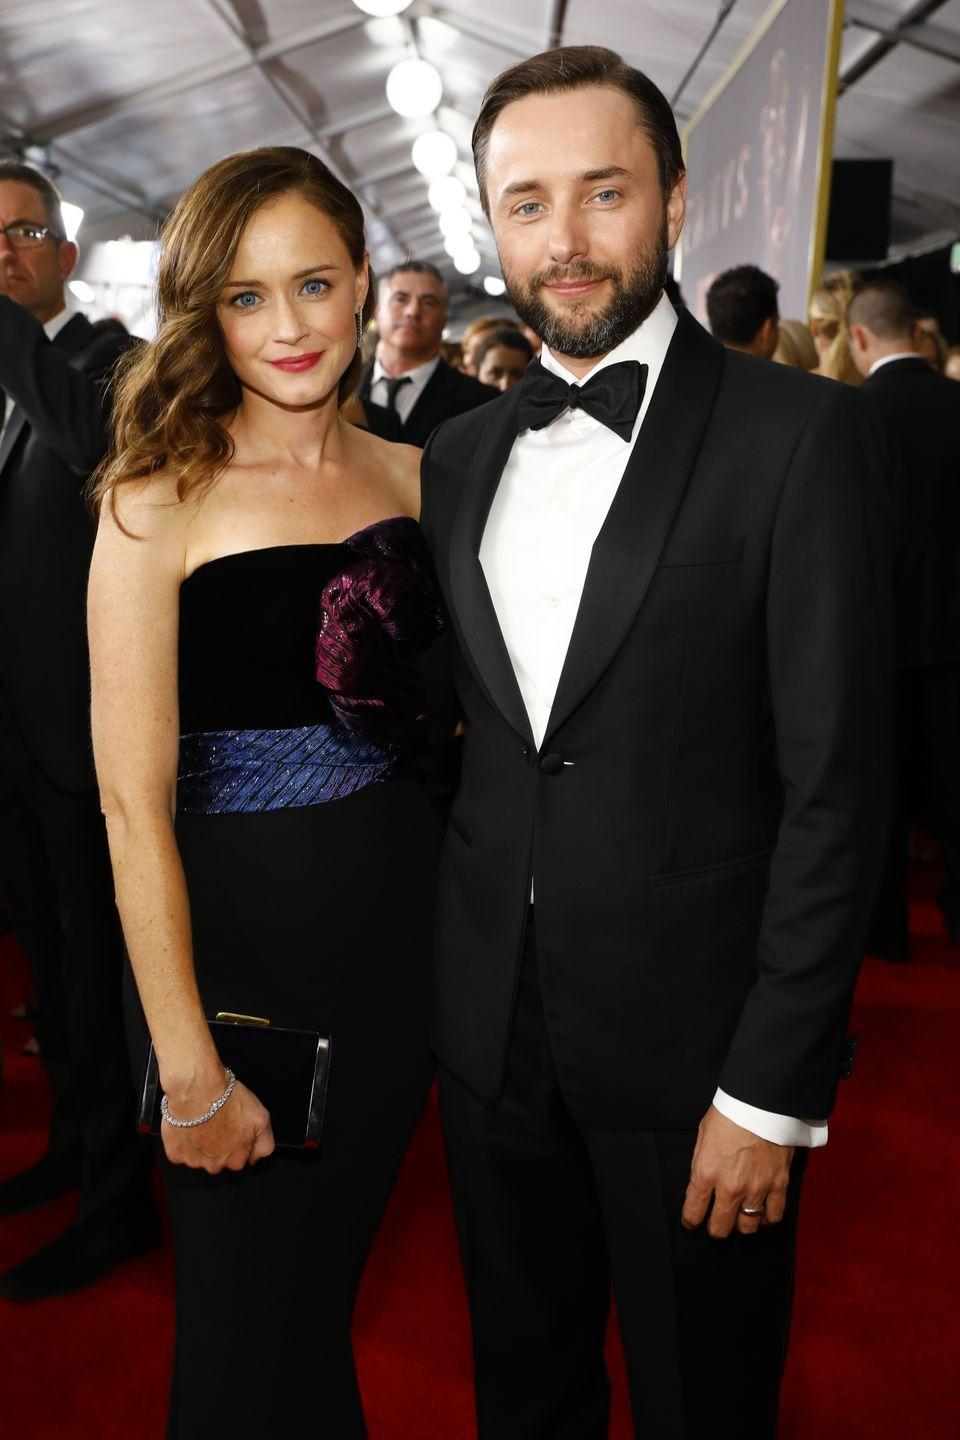 "<p>Bledel and her husband Vincent Kartheiser, who met on the set of <em>Mad Men</em>, like to keep to themselves, despite being on hugely popular TV shows. They were secretly married in 2014, and Bledel <a href=""http://www.eonline.com/news/766095/alexis-bledel-is-a-mom-gilmore-girls-welcomes-baby-with-husband-vincent-kartheiser"" rel=""nofollow noopener"" target=""_blank"" data-ylk=""slk:gave birth to their first child in 2016"" class=""link rapid-noclick-resp"">gave birth to their first child in 2016</a>, also without anyone knowing. </p><p>Her <em>Gilmore Girls</em> co-star Scott Patterson (a.k.a Luke Danes) spilled the beans in an interview. ""It was great to see her. She's really blossomed as a woman and now she's a proud new mother and married and happy,"" he told <a href=""https://www.glamour.com/story/gilmore-girls-scott-patterson-on-luke-and-lorelai-relationship-in-netflix-revival?mbid=social_fb_fanpage"" rel=""nofollow noopener"" target=""_blank"" data-ylk=""slk:Glamour"" class=""link rapid-noclick-resp""><em>Glamour</em></a>.<br></p>"